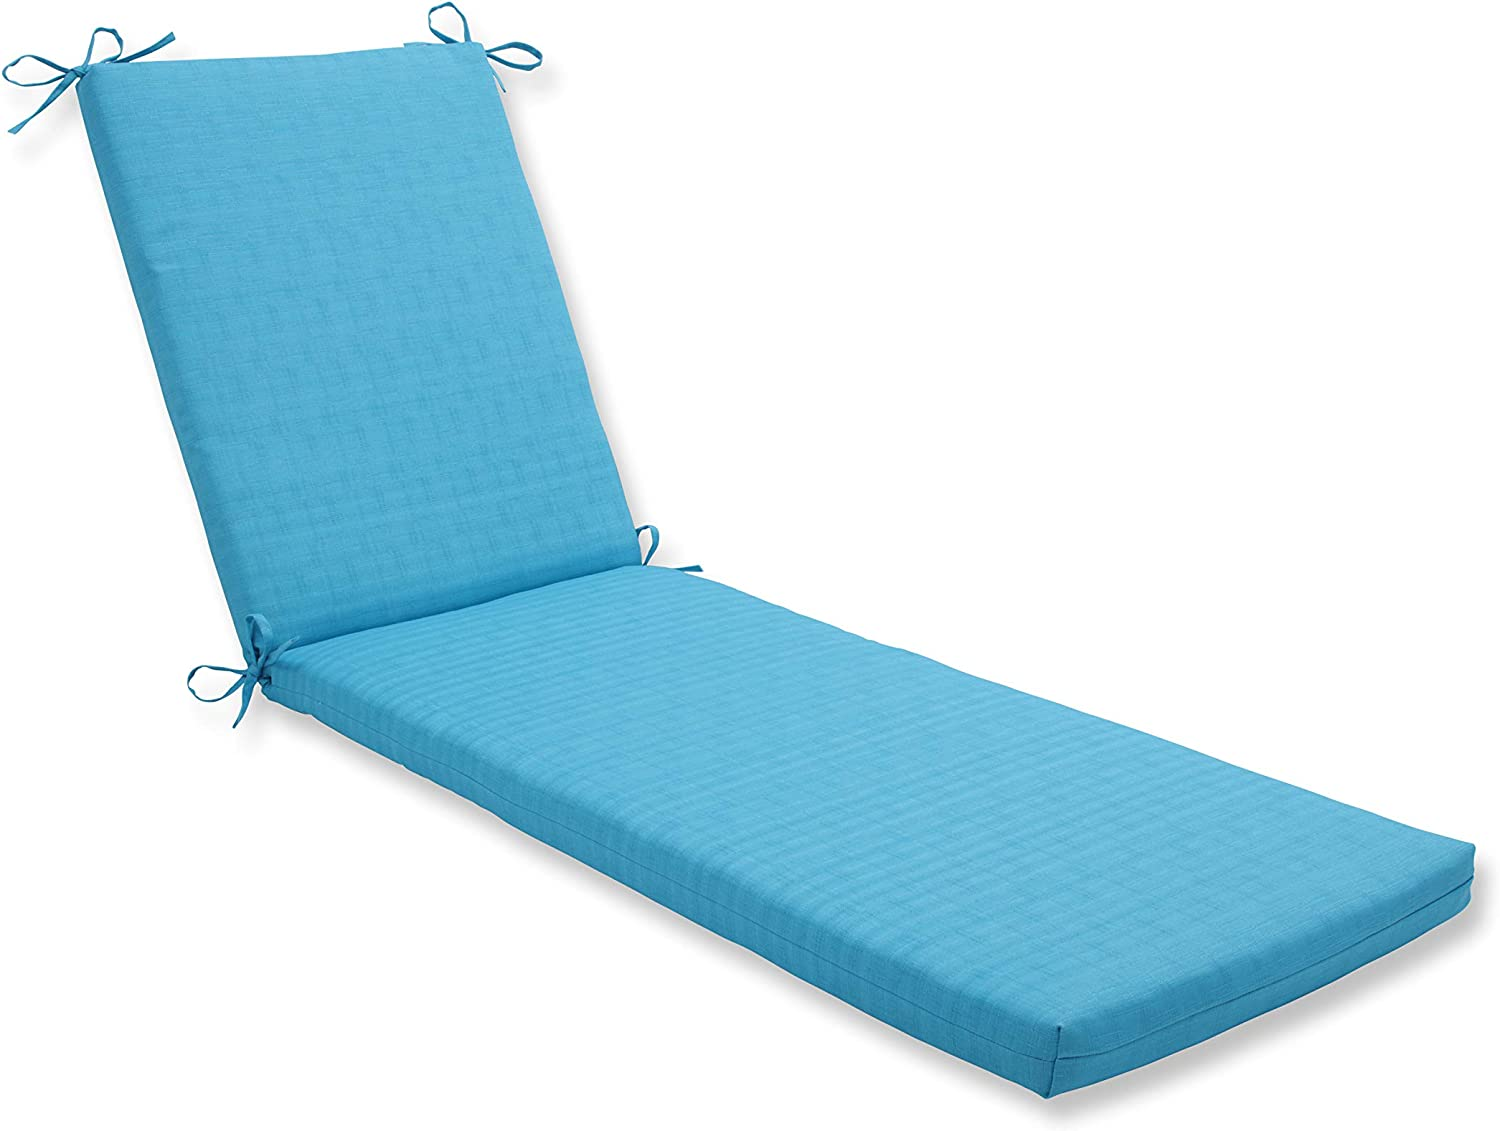 Pillow Perfect Outdoor Max 87% OFF Indoor Veranda Turquoise Lounge Chaise Cu 40% OFF Cheap Sale